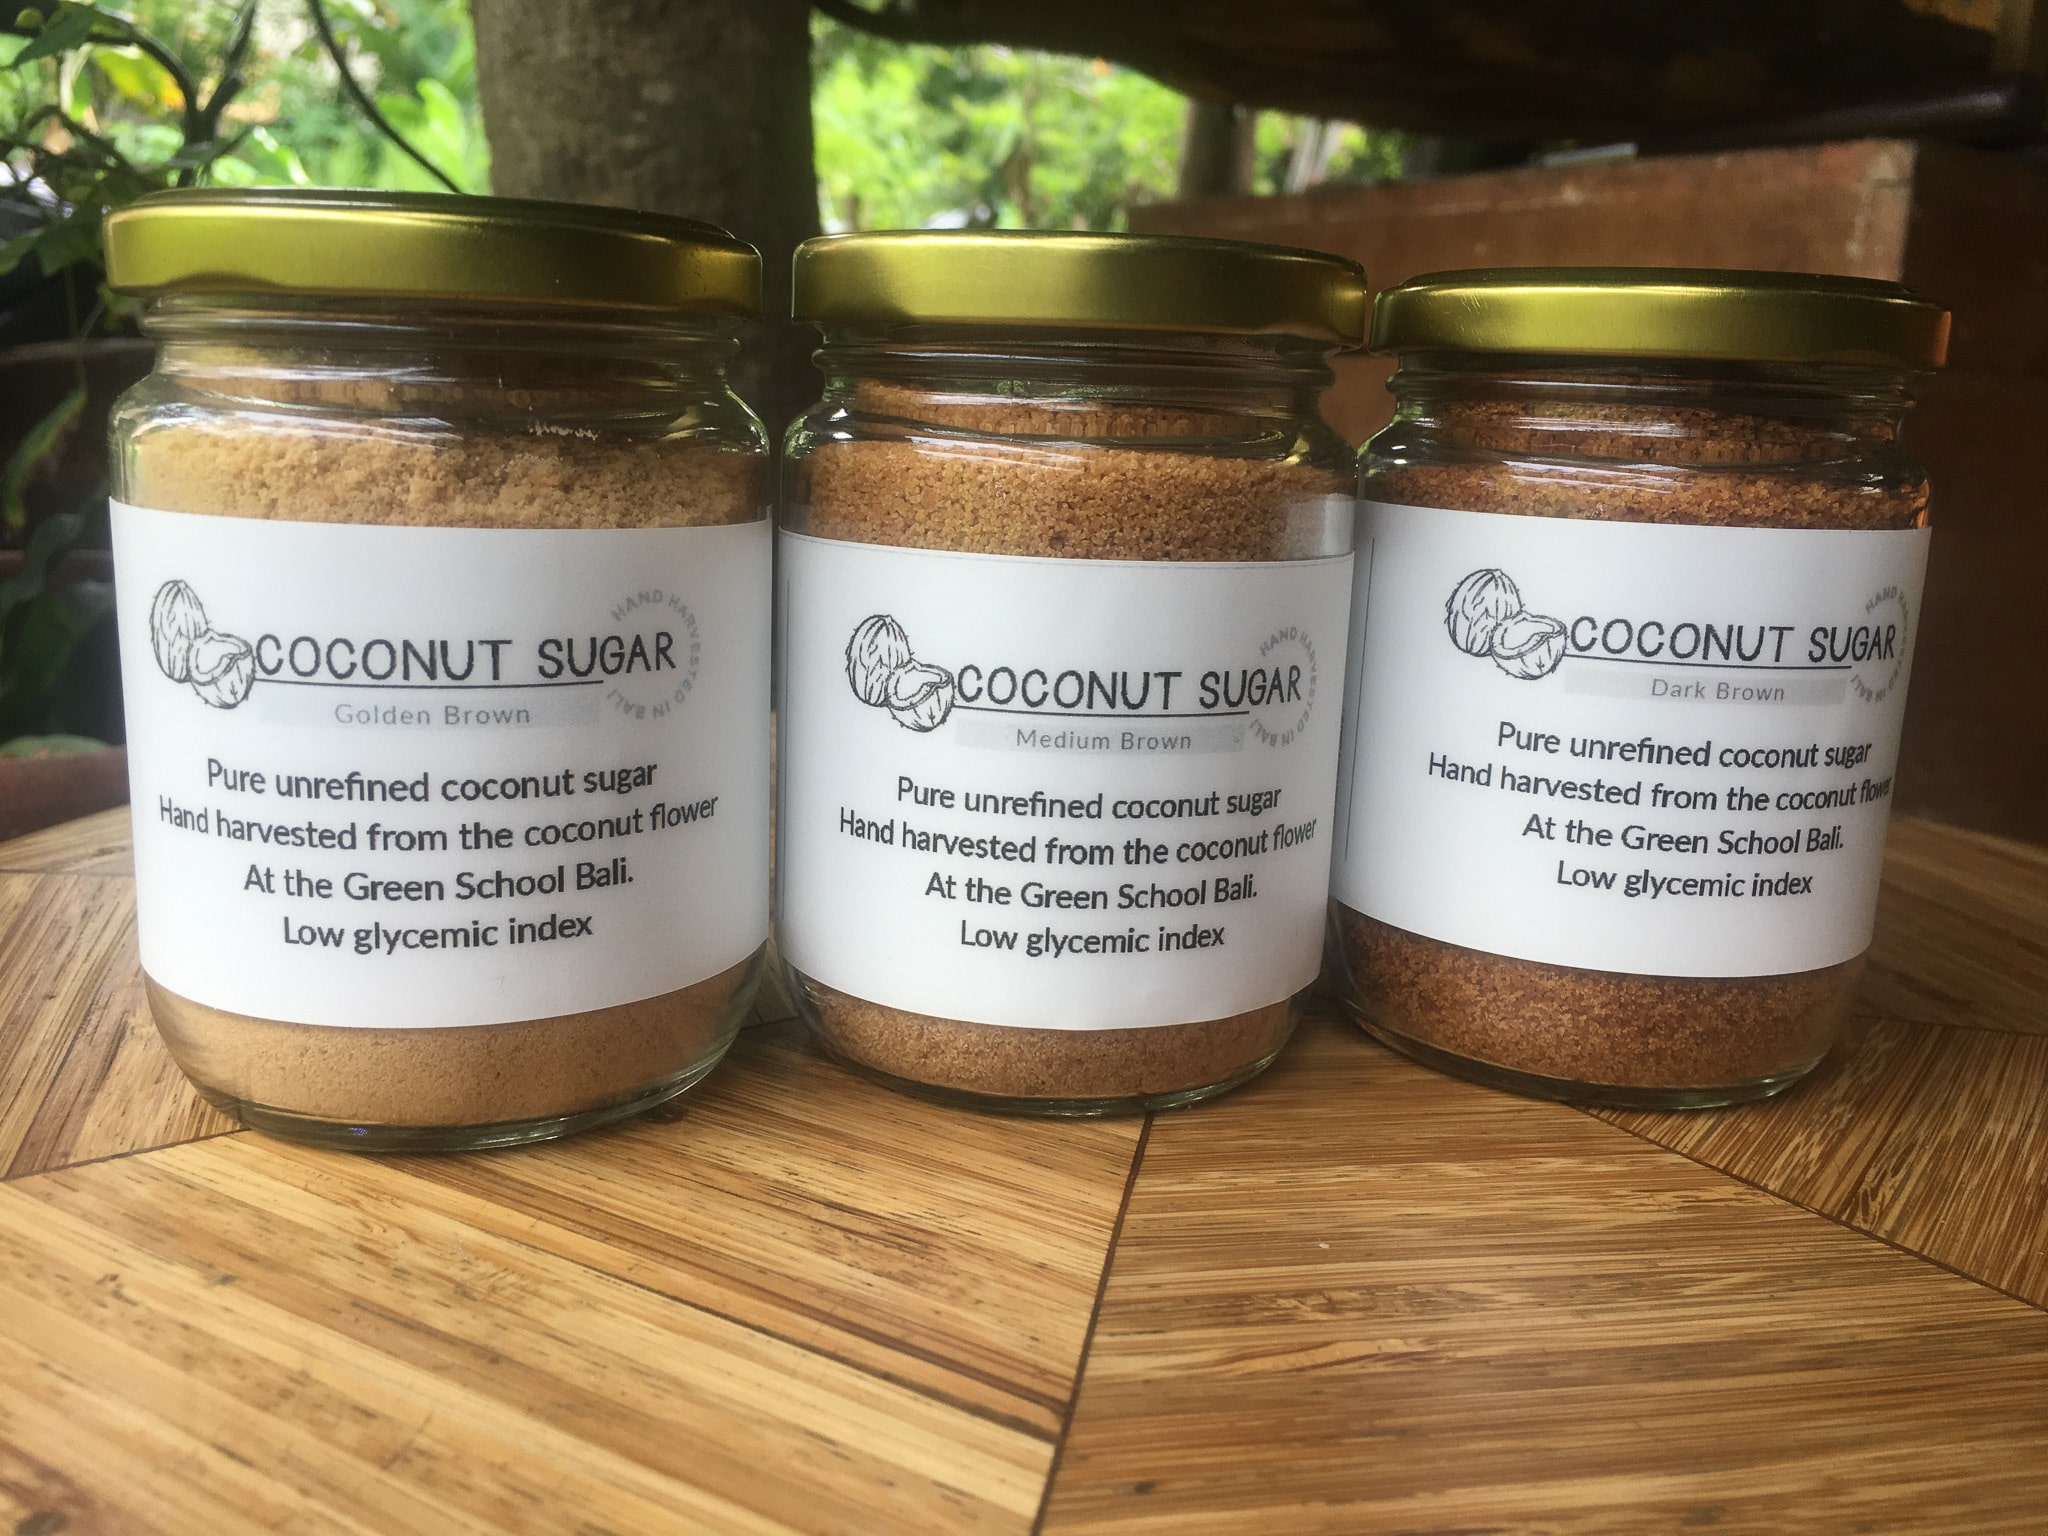 Coconut sugar by The Kul Kul Farm